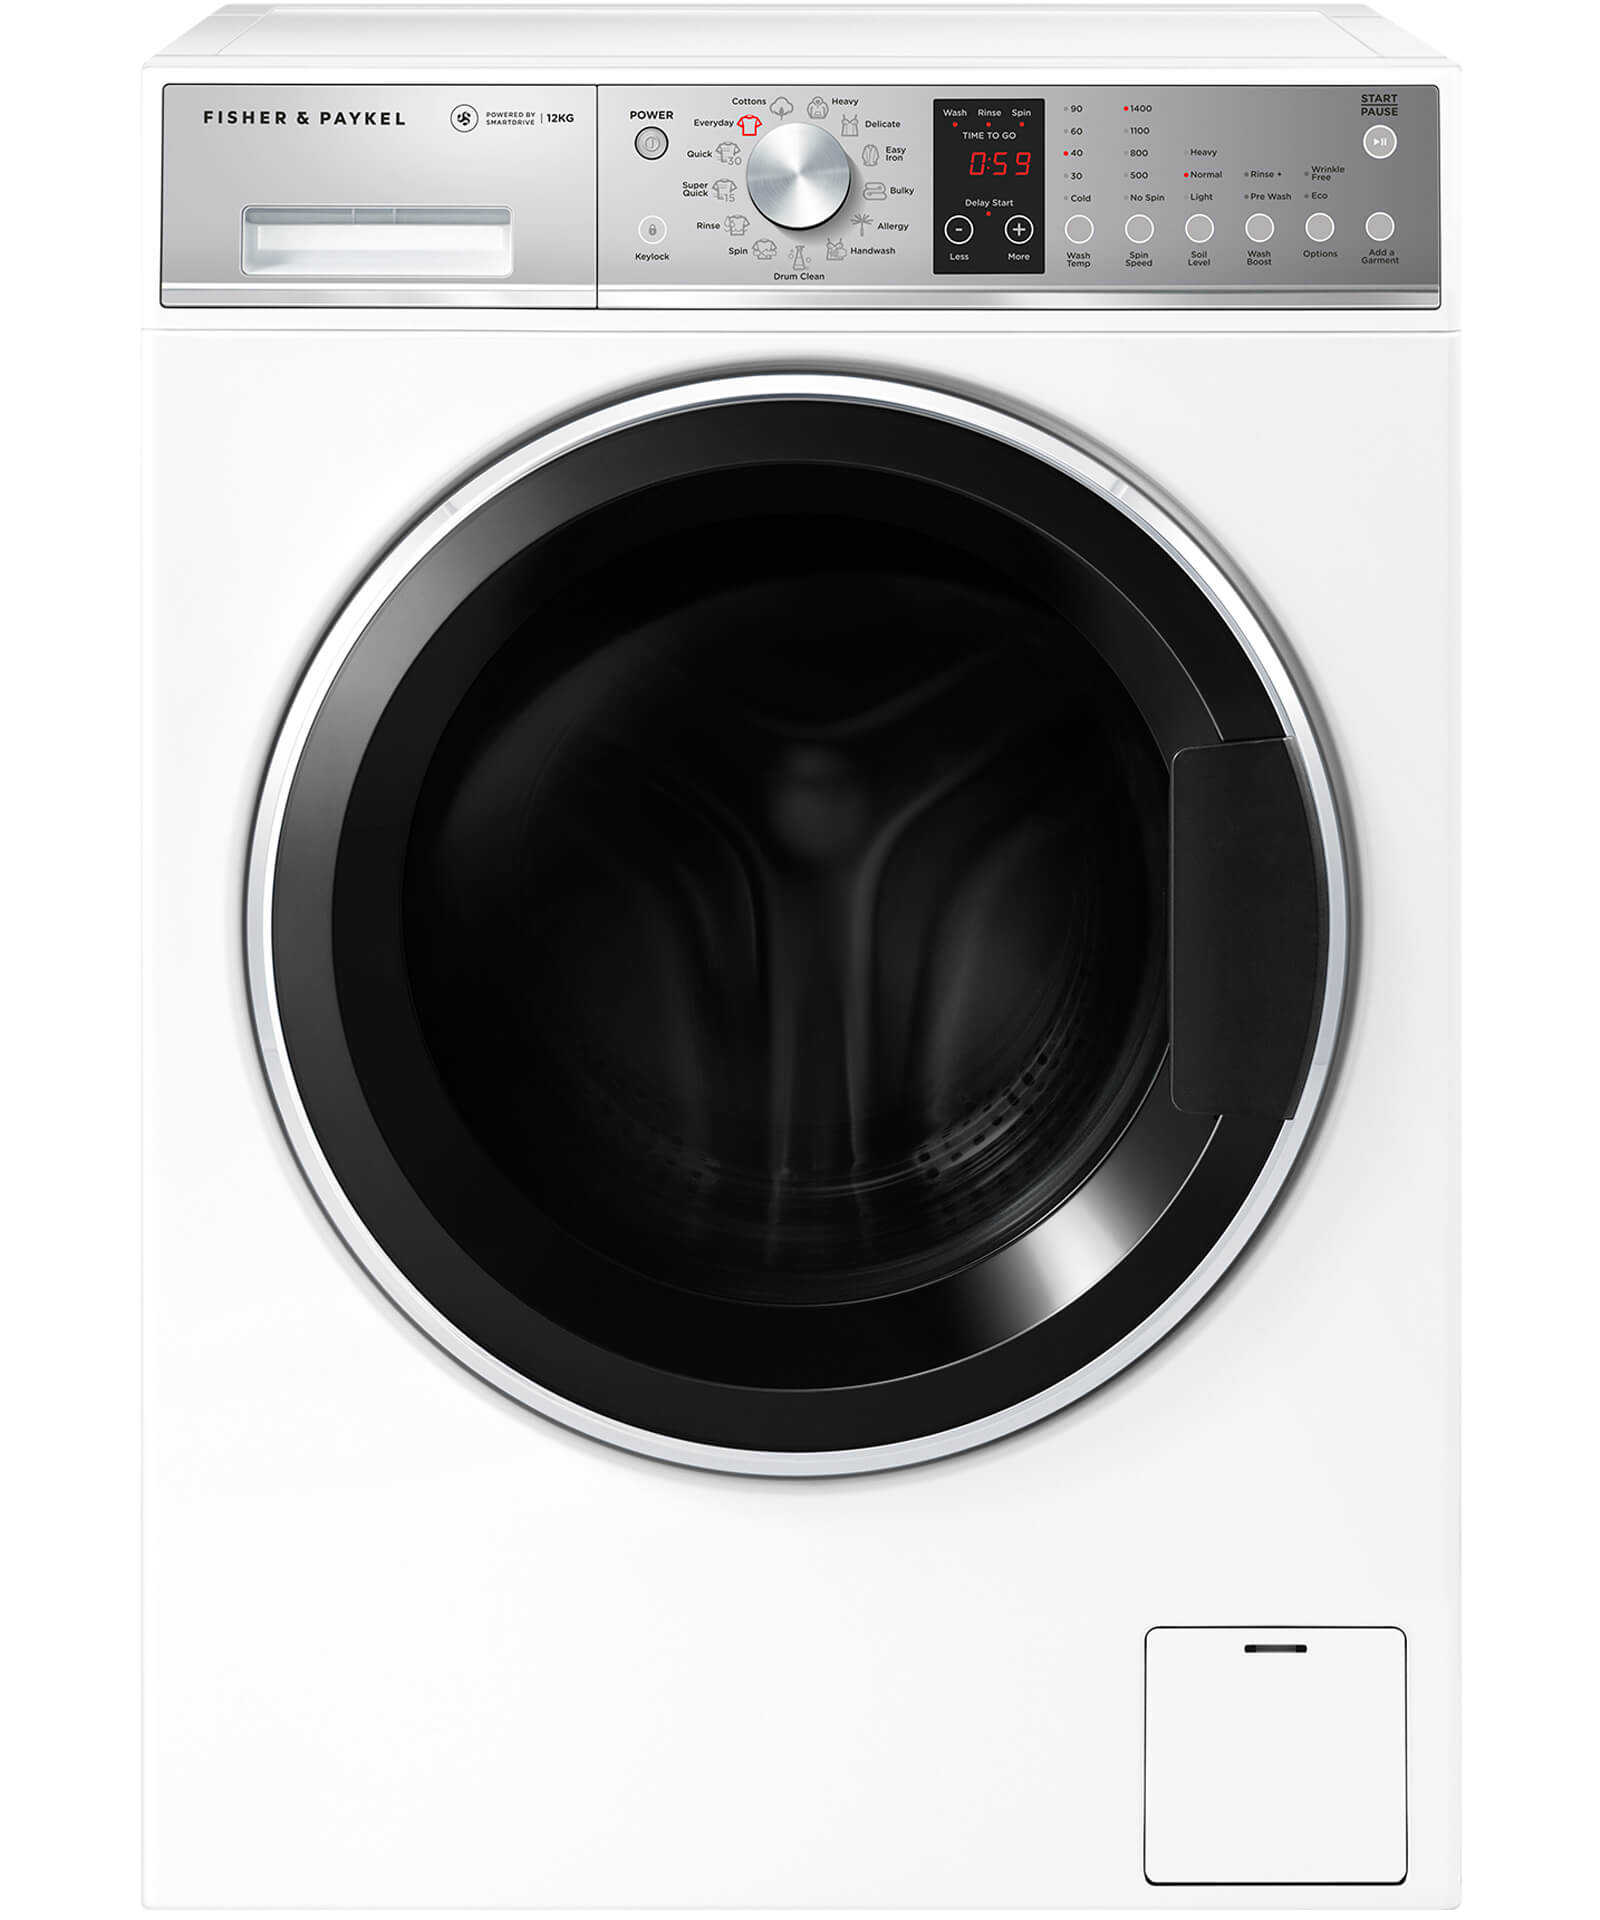 WH1260P1 - Front Loader Washing Machine 12kg - 93237